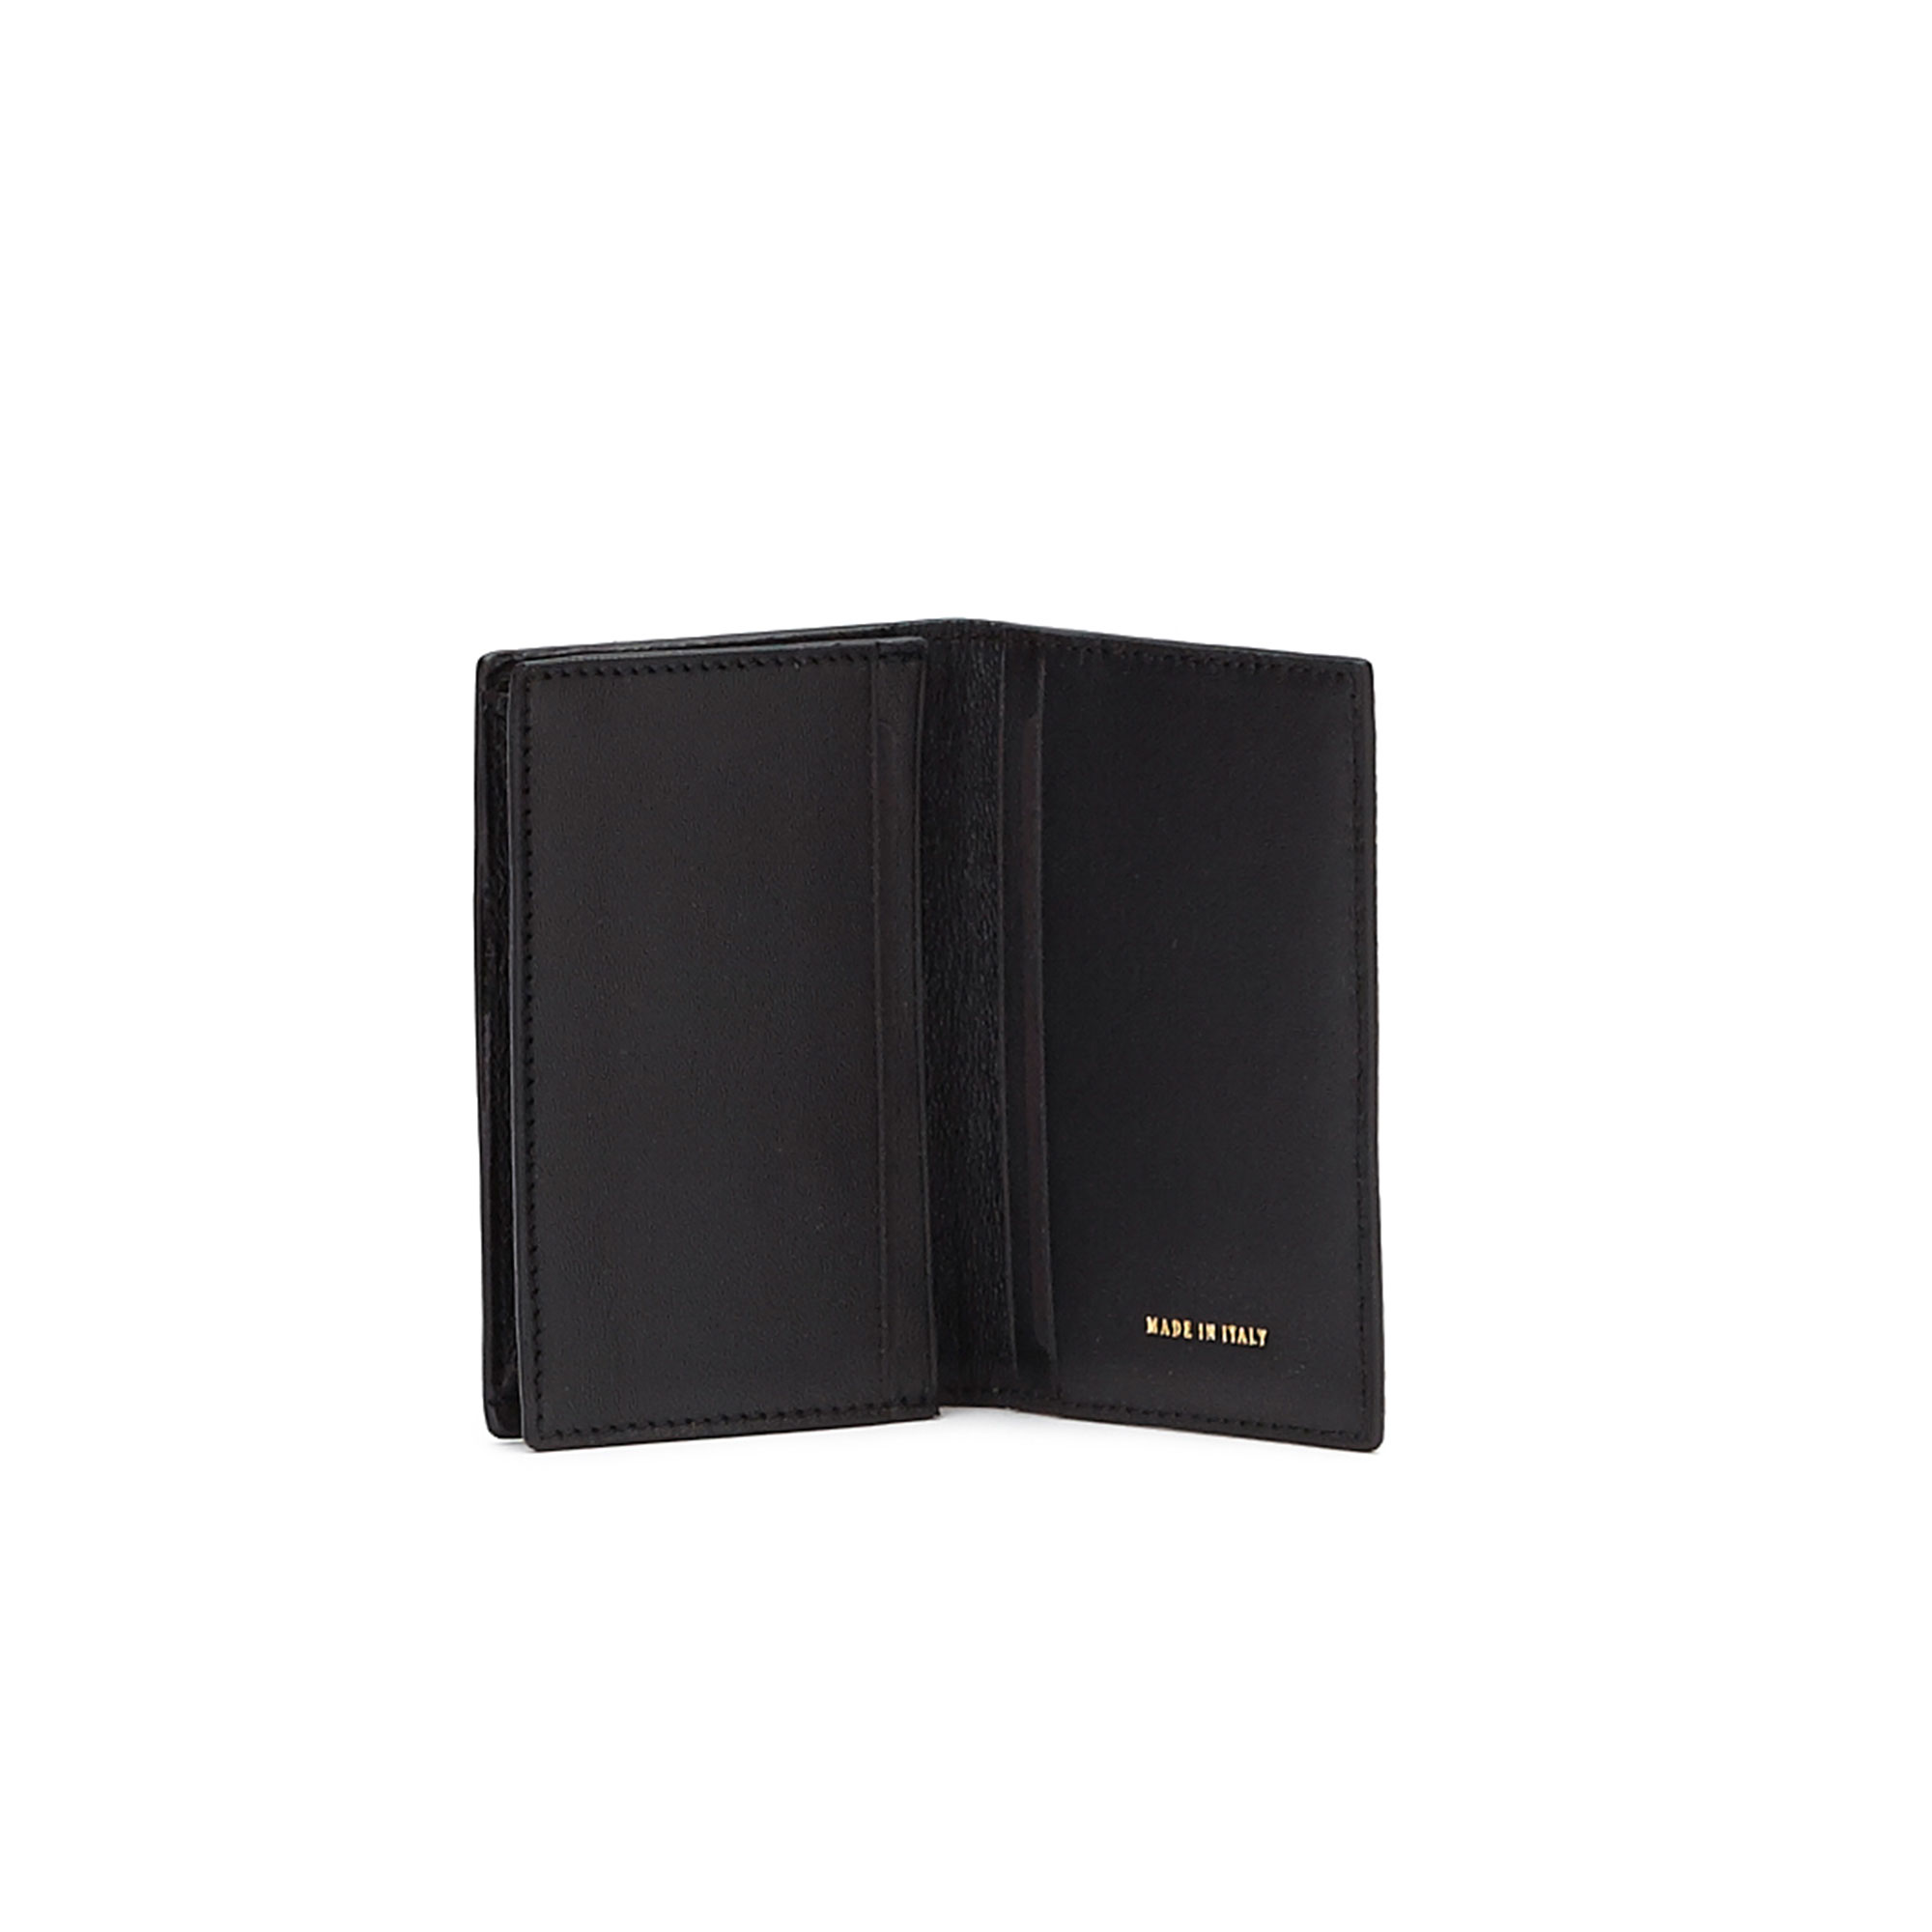 The black grain calf Business Card Holder by Bertoni 1949 02